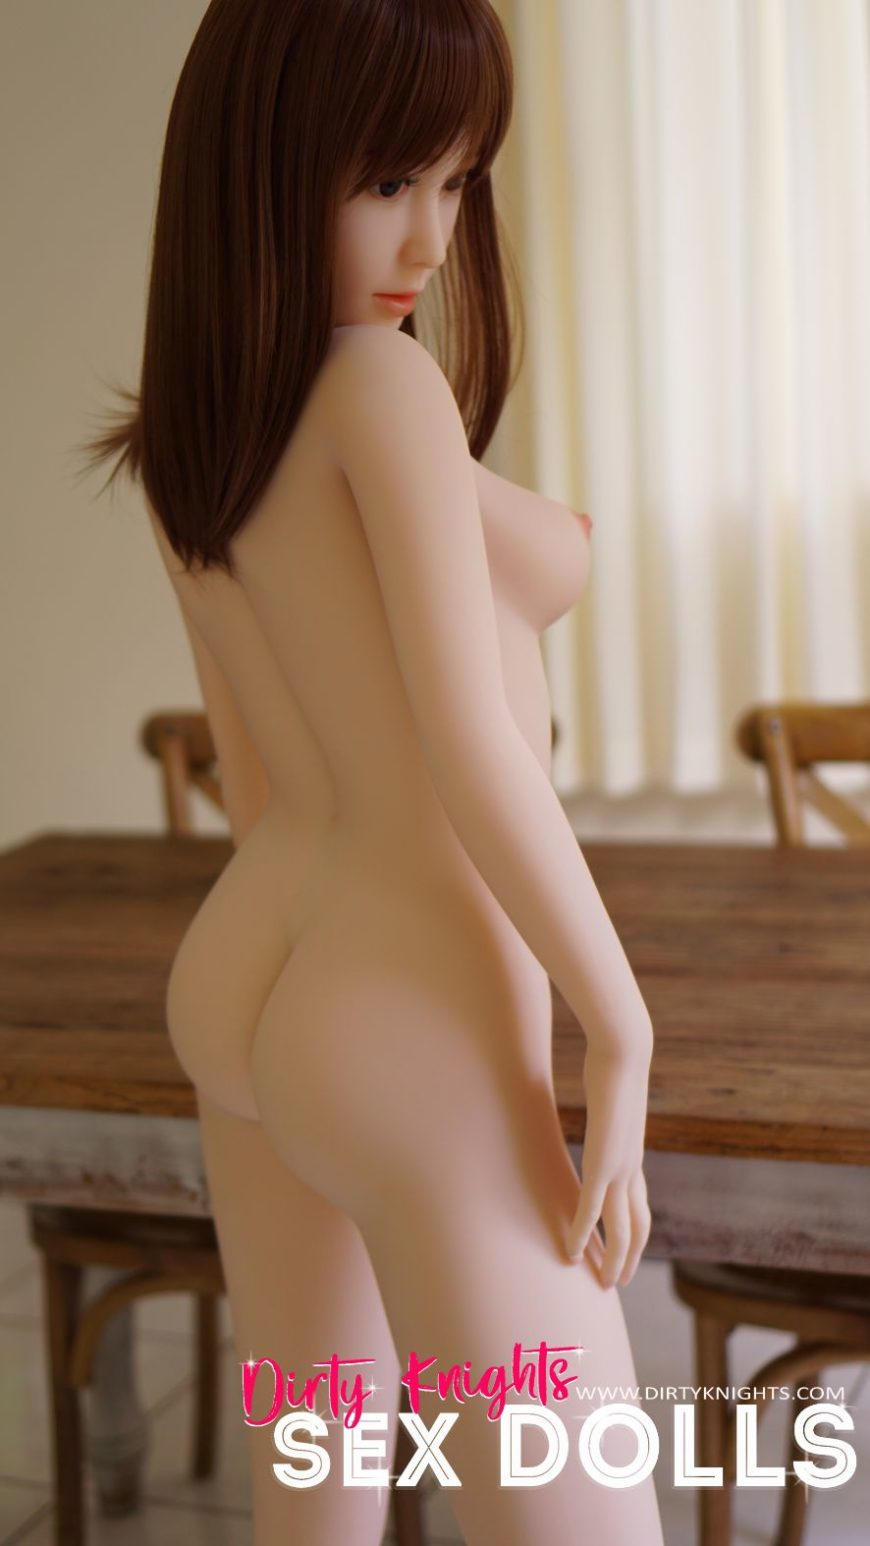 Sasa Sex Doll posing nude for Dirty Knights Sex Dolls (38)